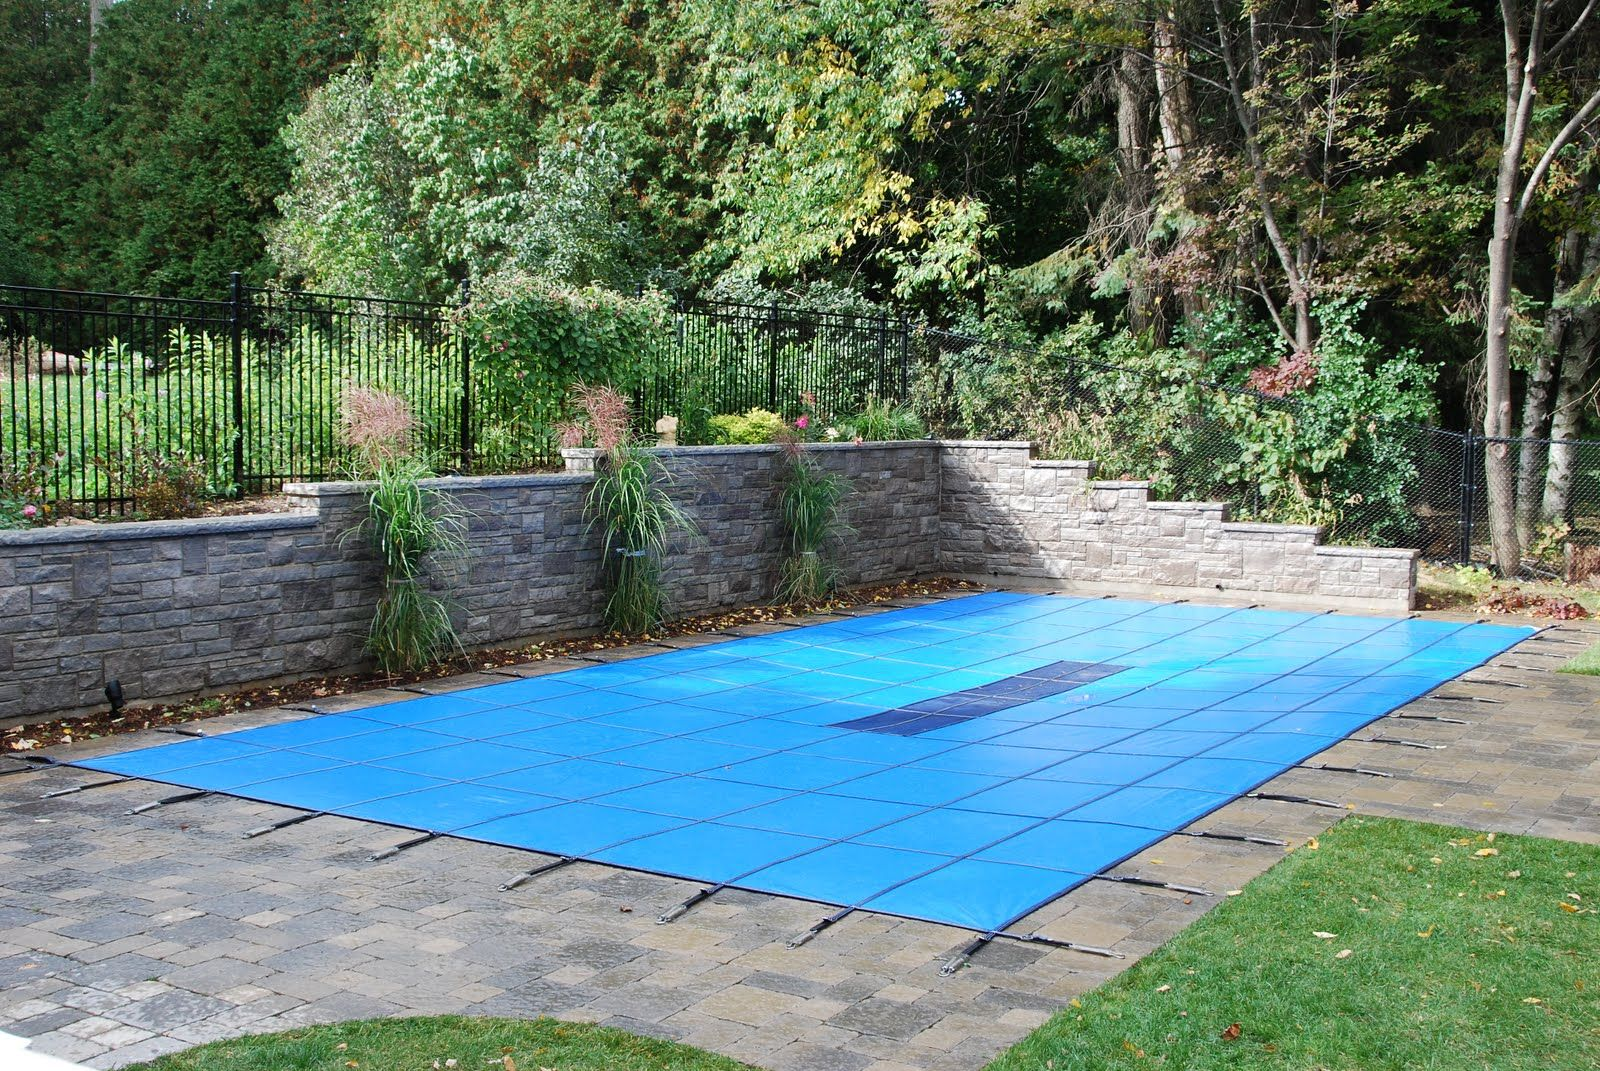 20 Yr Solid Safety Cover W Drain For 20 X 40 Rectangle W 2 Offset Right Step Rectangle Pool Pool Landscaping Pool Cover